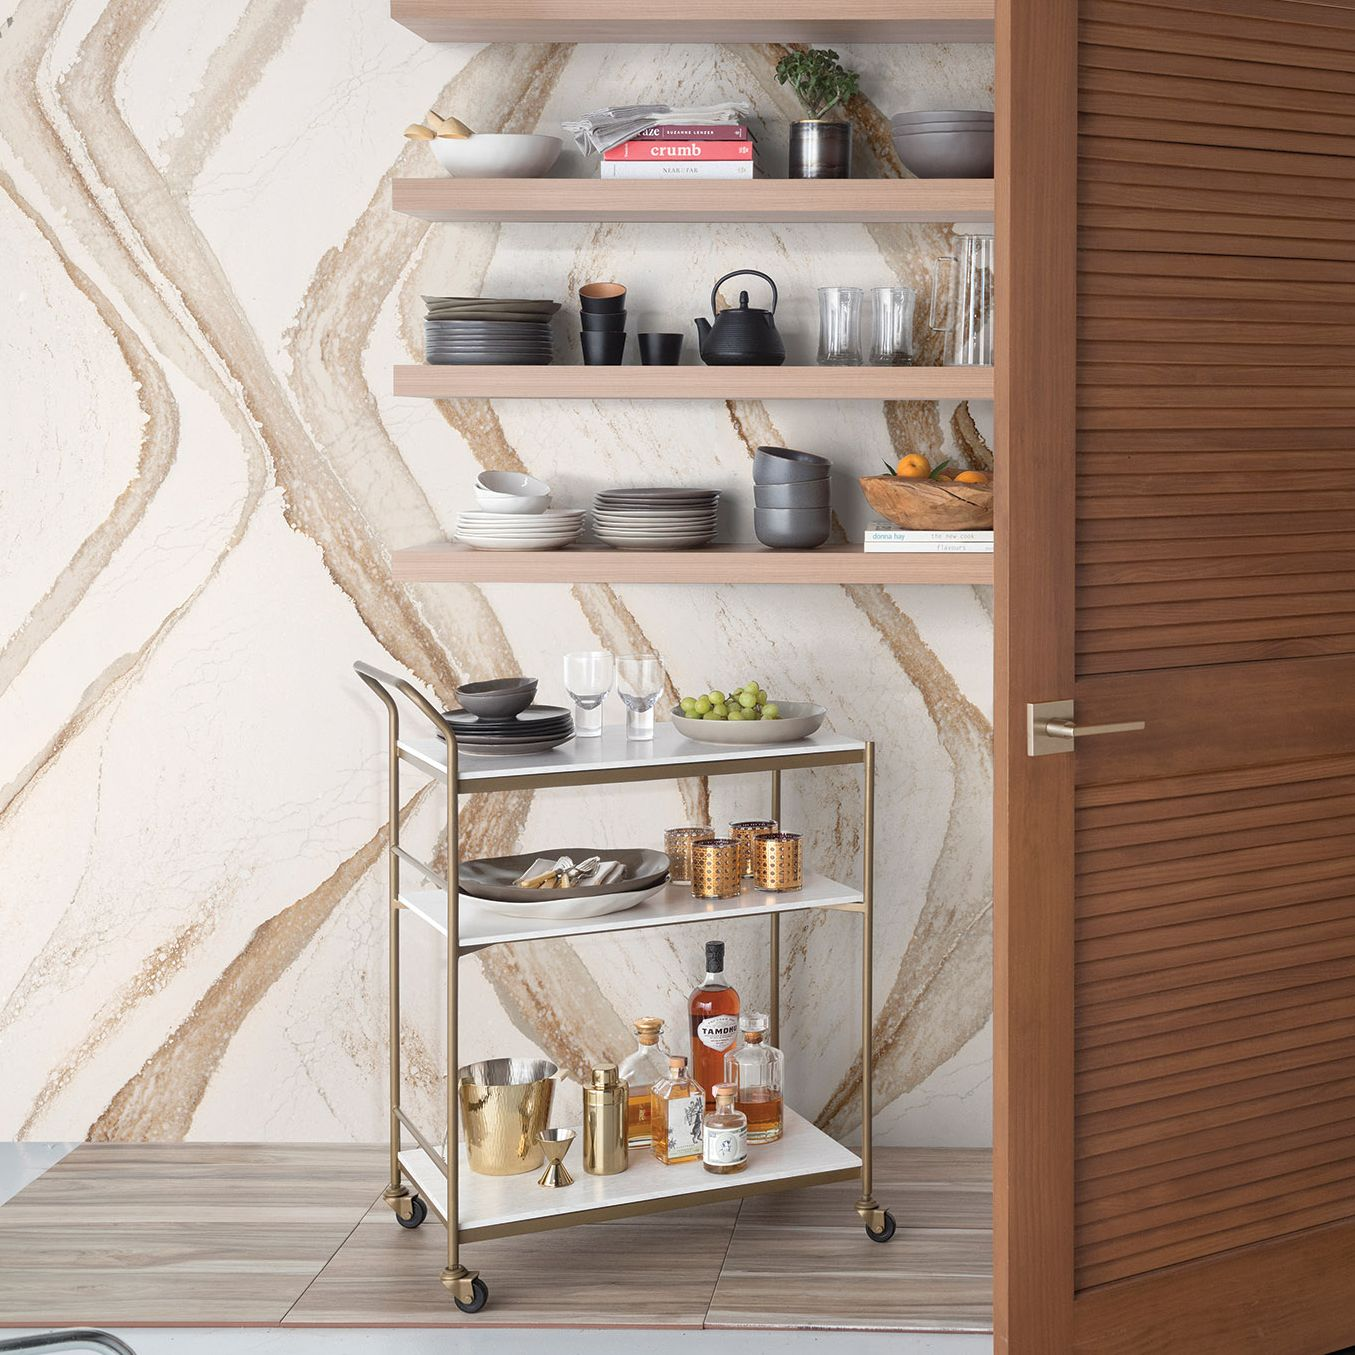 https://www.cambriausa.com/style/modern-pantry/